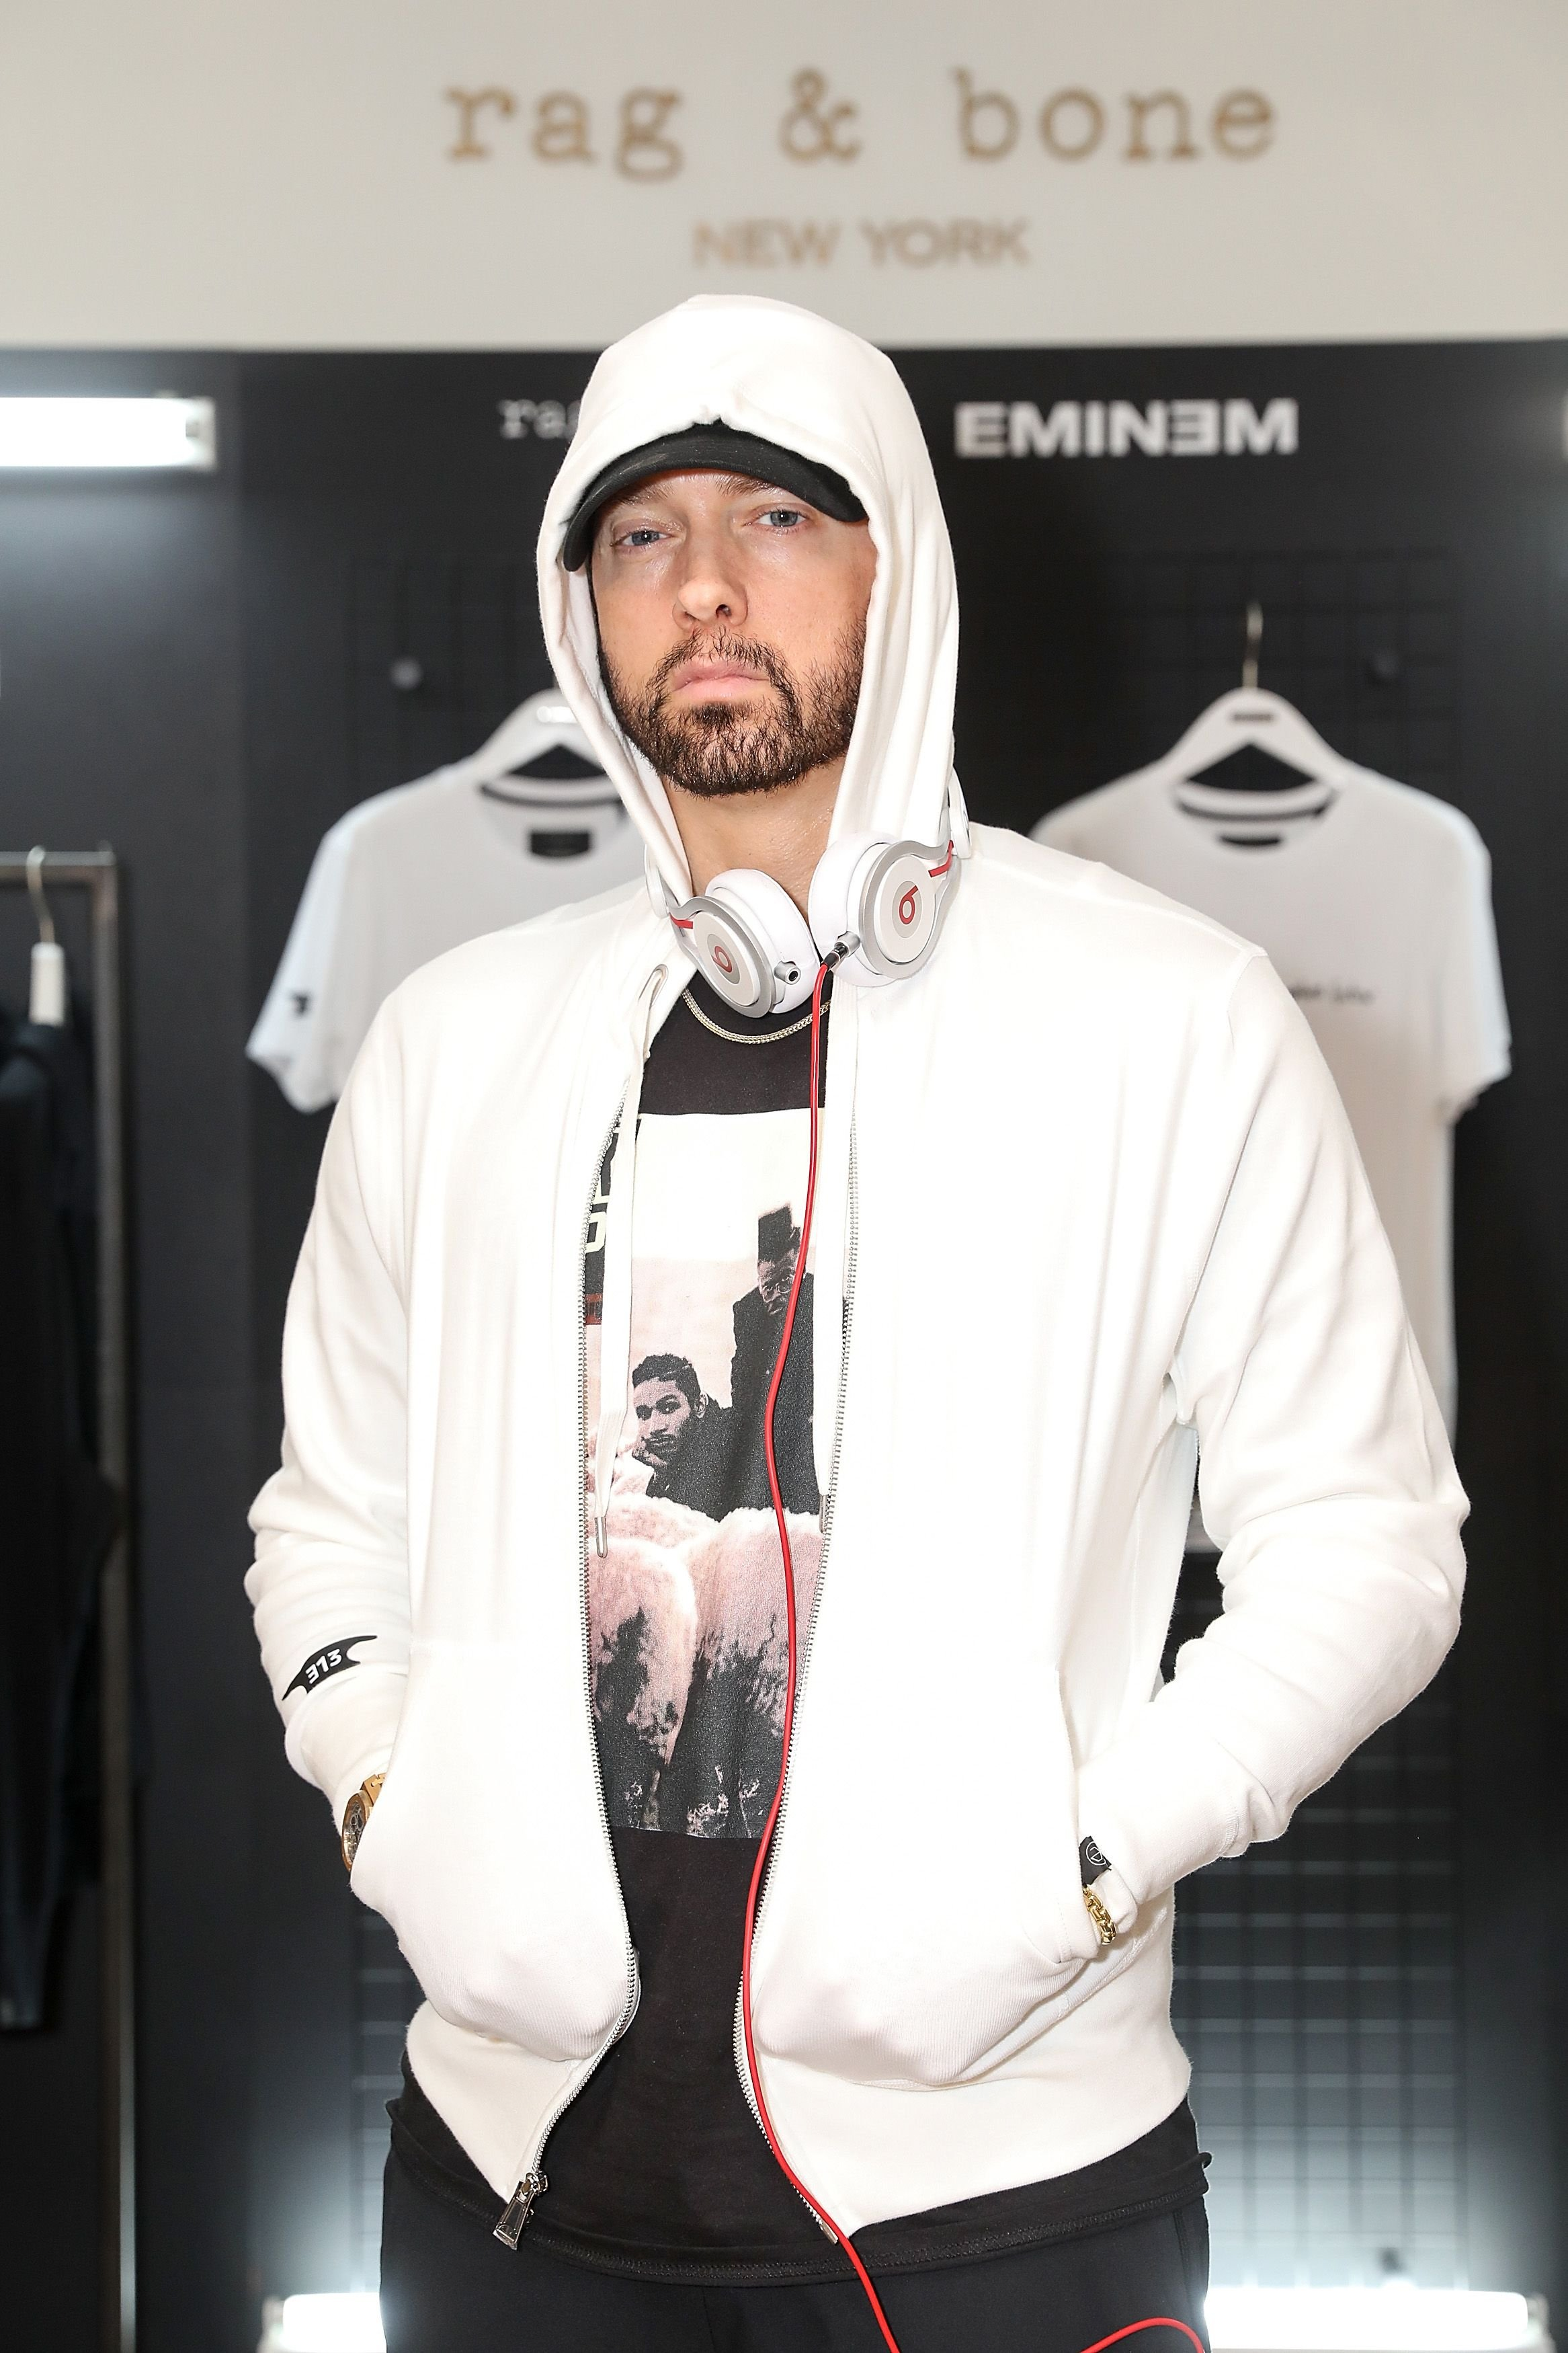 Eminem at the rag & bone X Eminem London Pop-Up. Source  | Photo: Getty Images